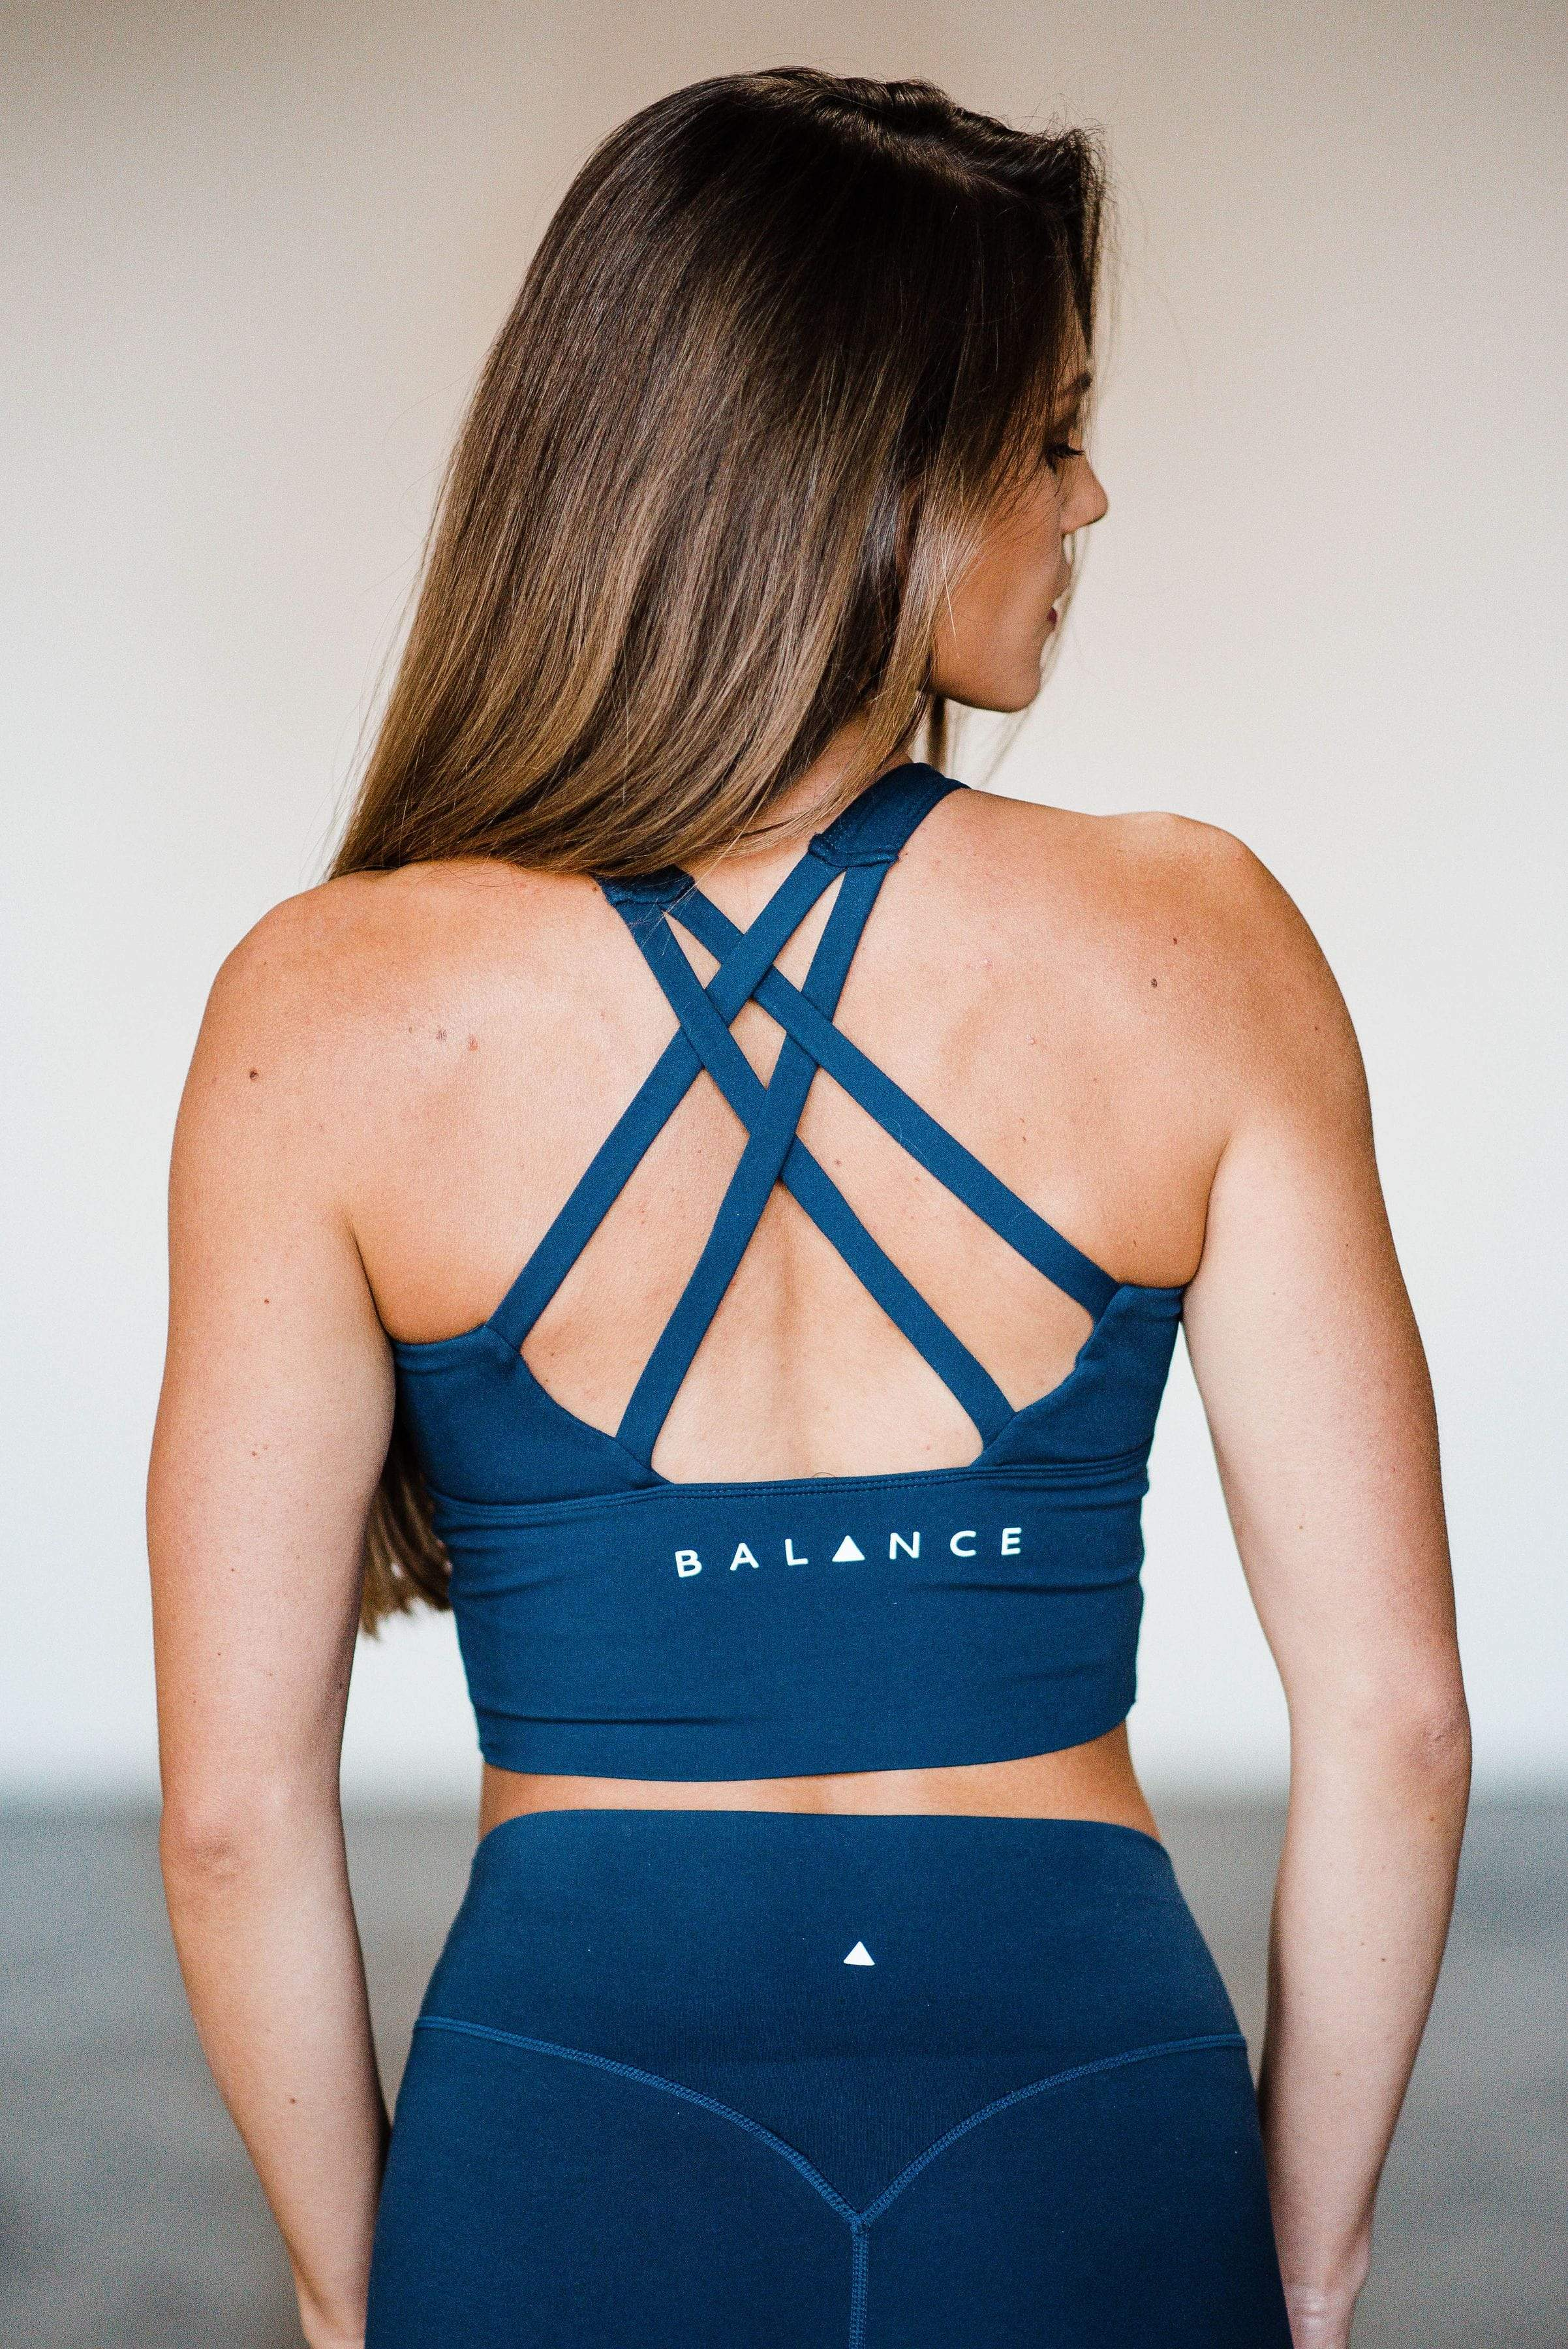 Balance Athletica Tops XS The Define Top - Rain 101R-XS